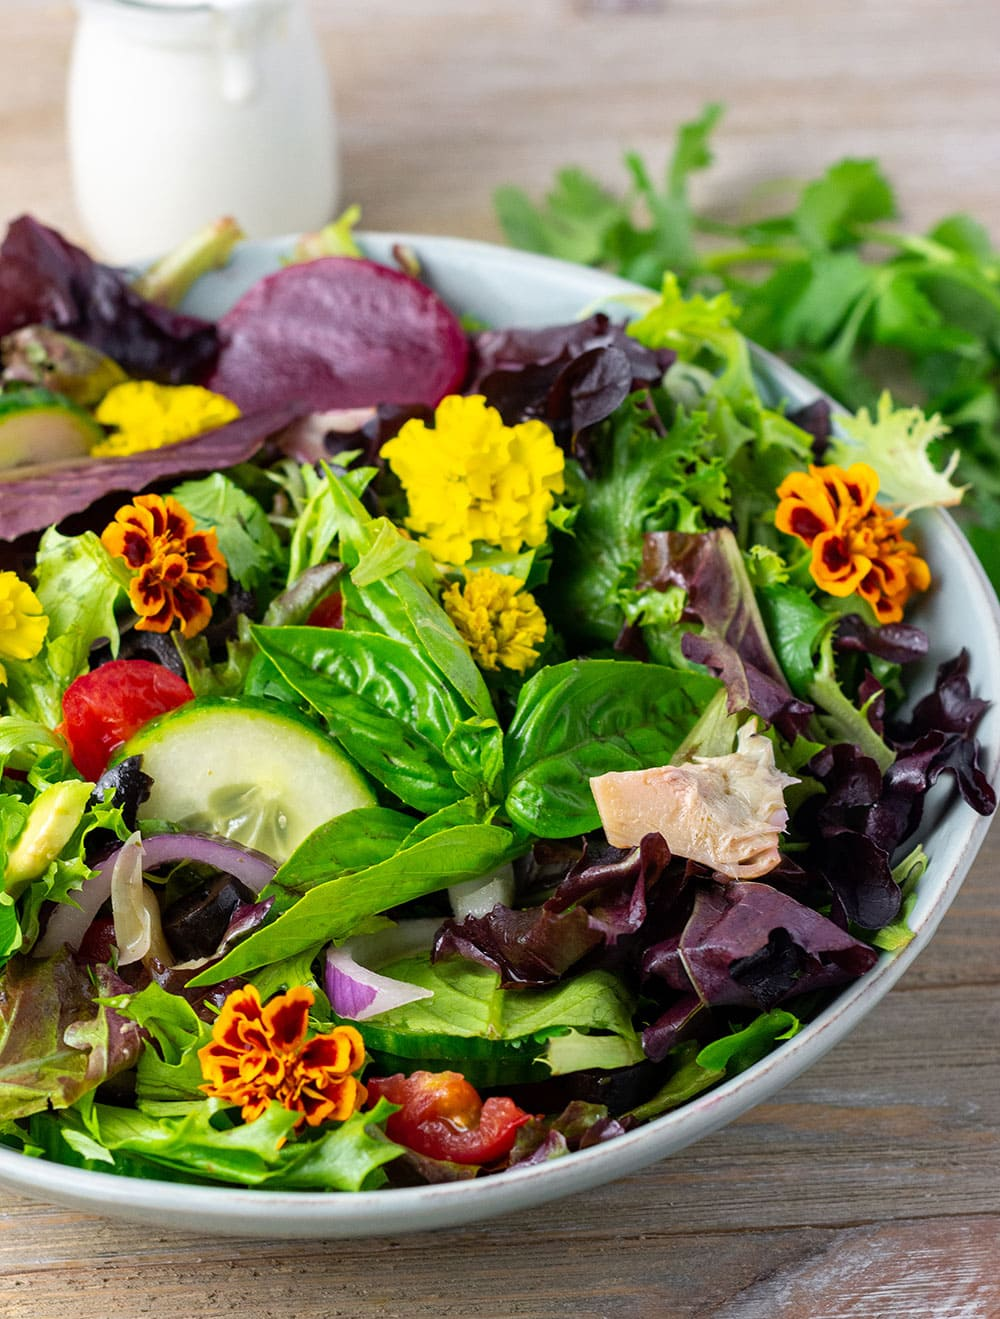 This delicious spring mix salad recipe is fresh vibrant and healthy, made with baby spring mix greens, edible flowers, tomato, avocado, cucumber, beet, artichoke hearts, red onion, olive and served with homemade salad dressing.